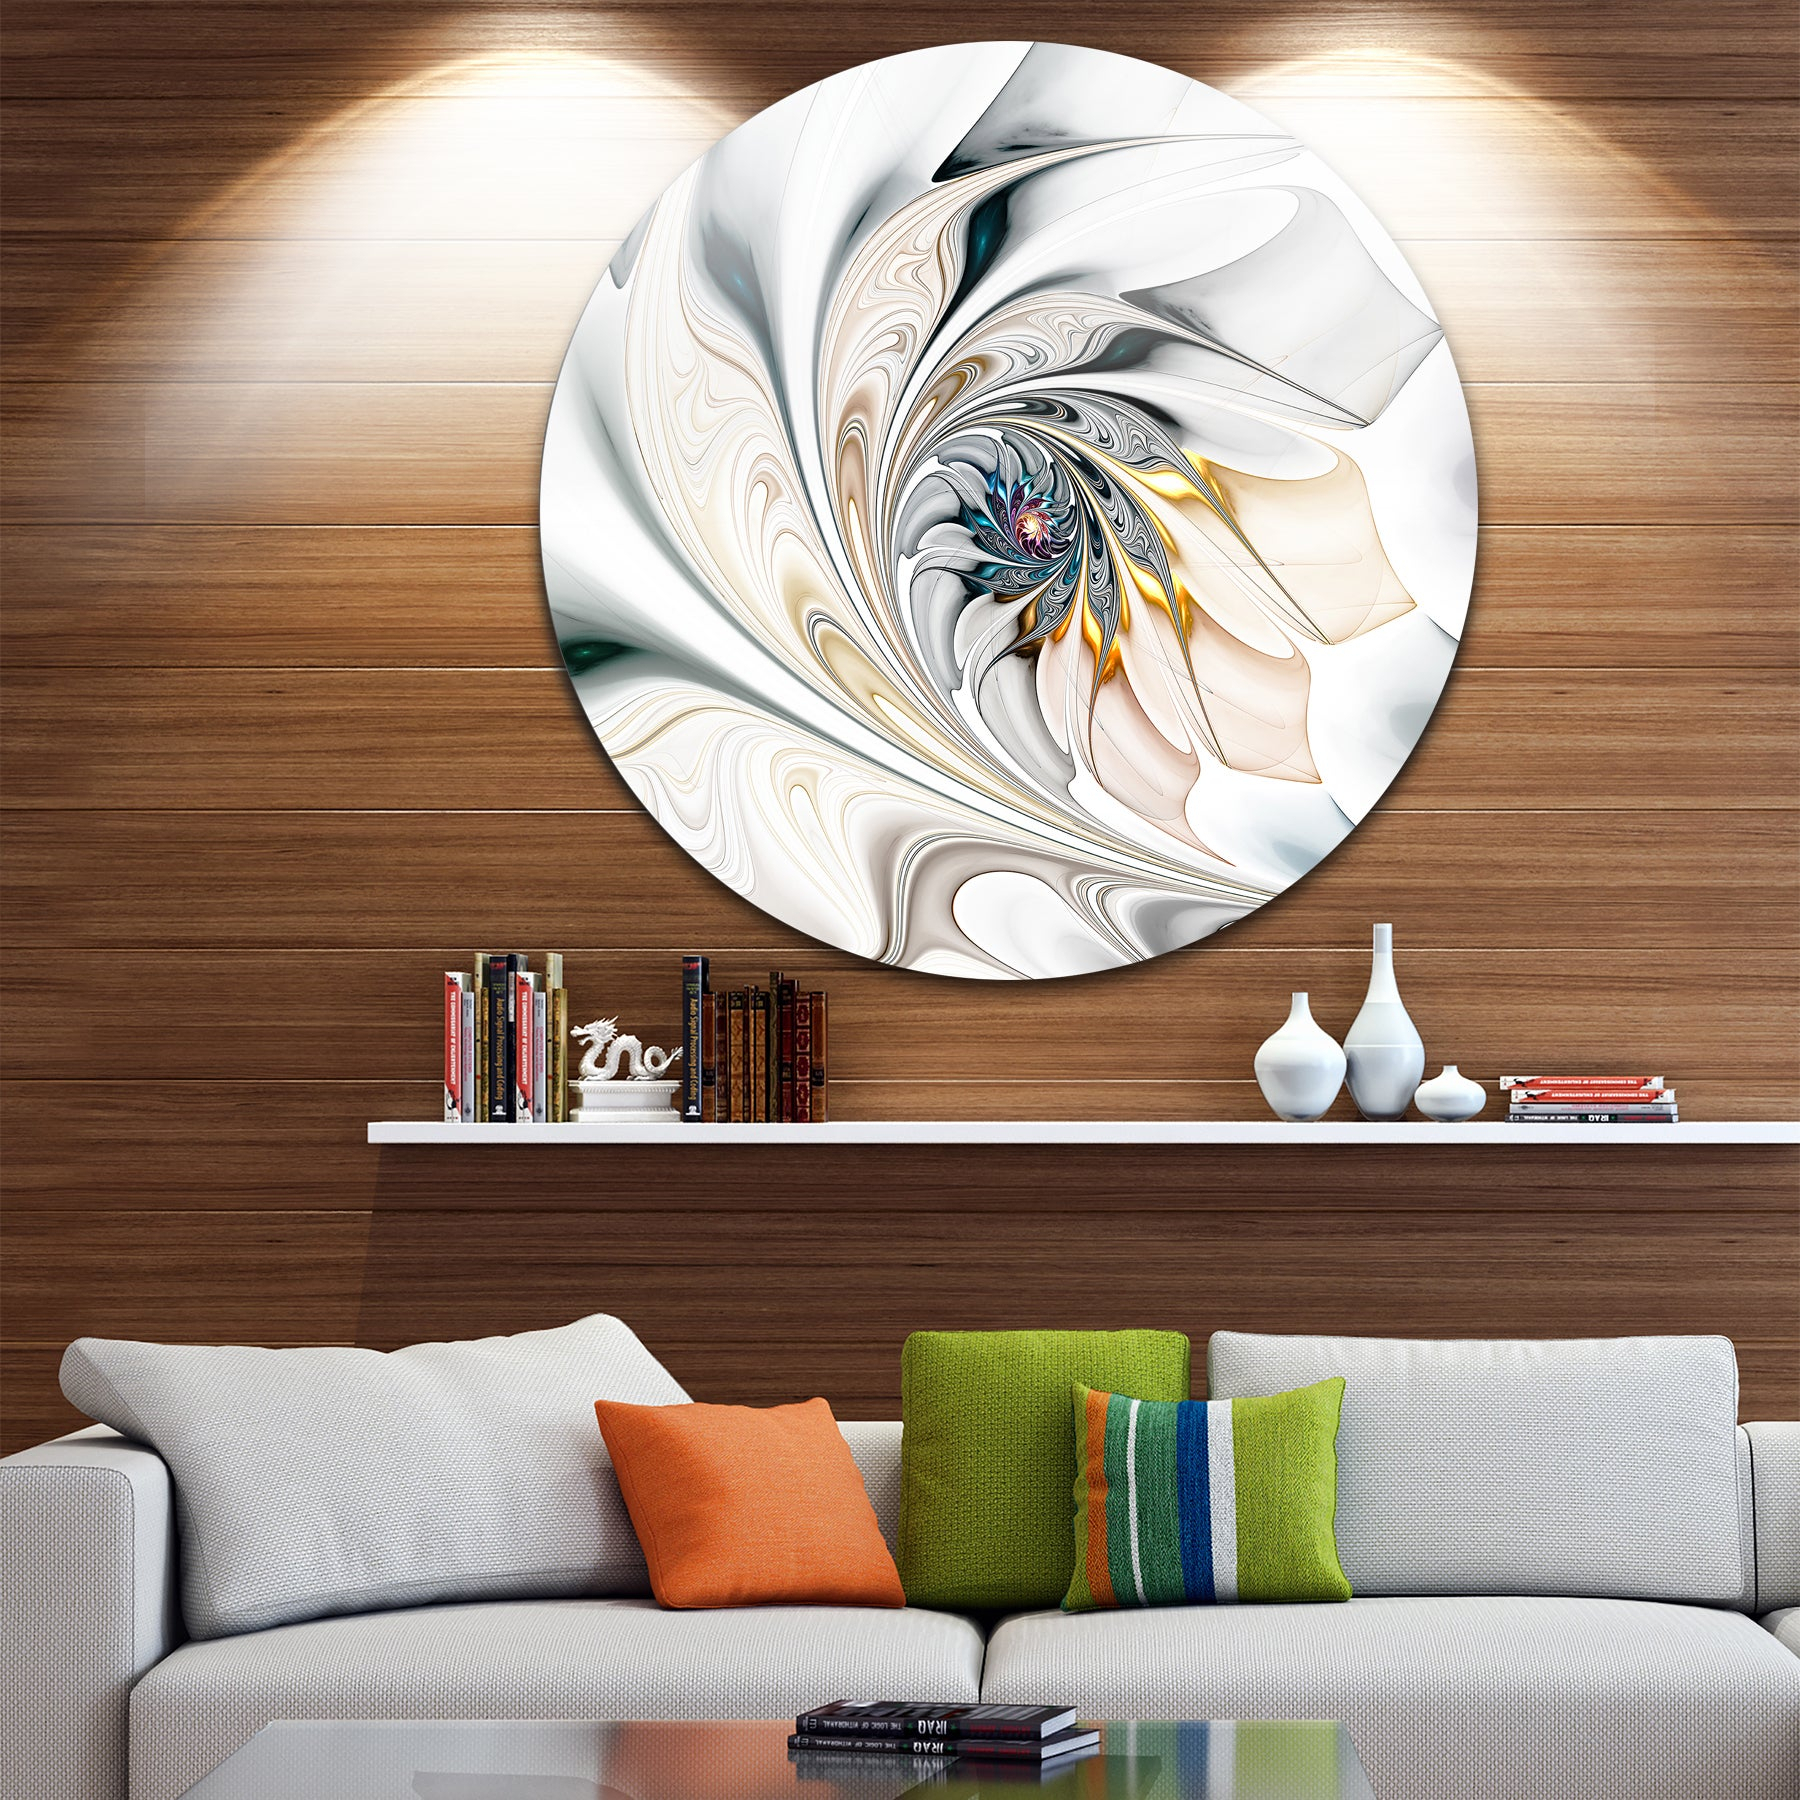 Find Great Art Gallery Deals Shopping At Overstock For 2 Piece Multiple Layer Metal Flower Wall Decor Sets (View 9 of 20)